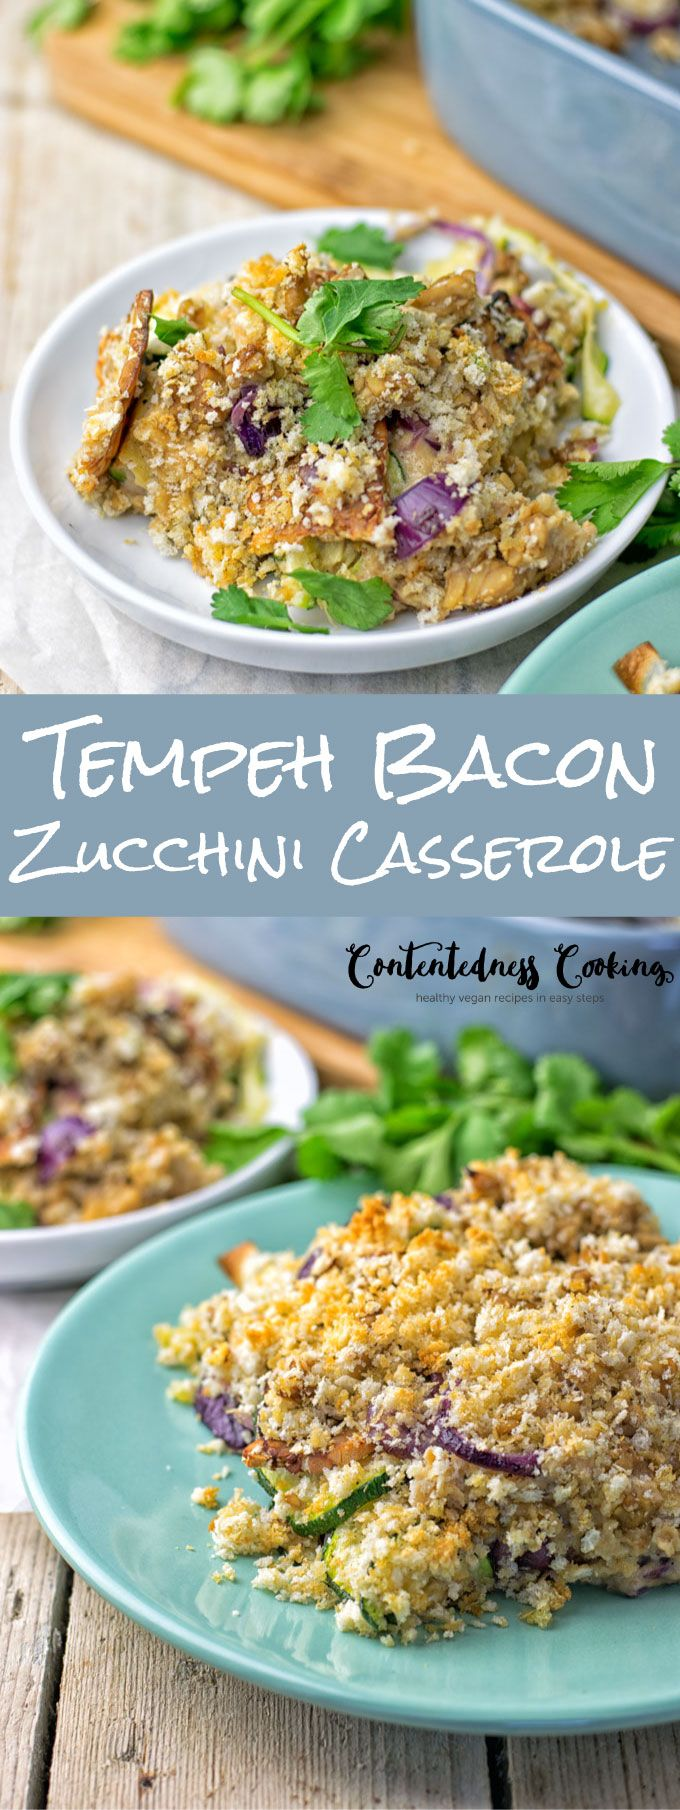 My Tempeh Bacon Zucchini Casserole is all you need for lunch and dinner. A satisfying, glutenfree,#healthy and so delicious plantbased meal made with just 6 ingredients. vegan